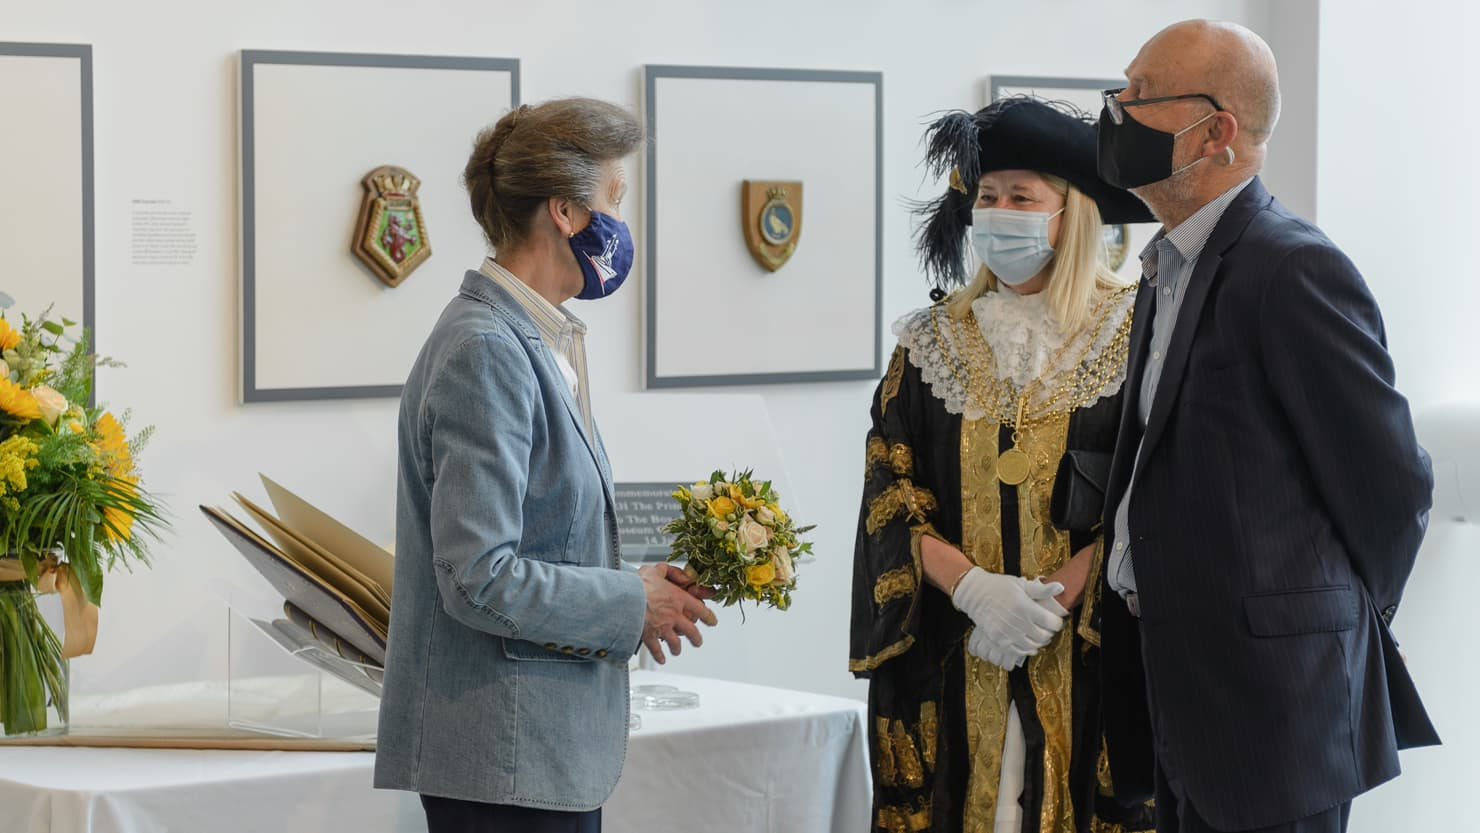 HRH Princess Anne talking to a man and a woman while holding a bunch of flowers